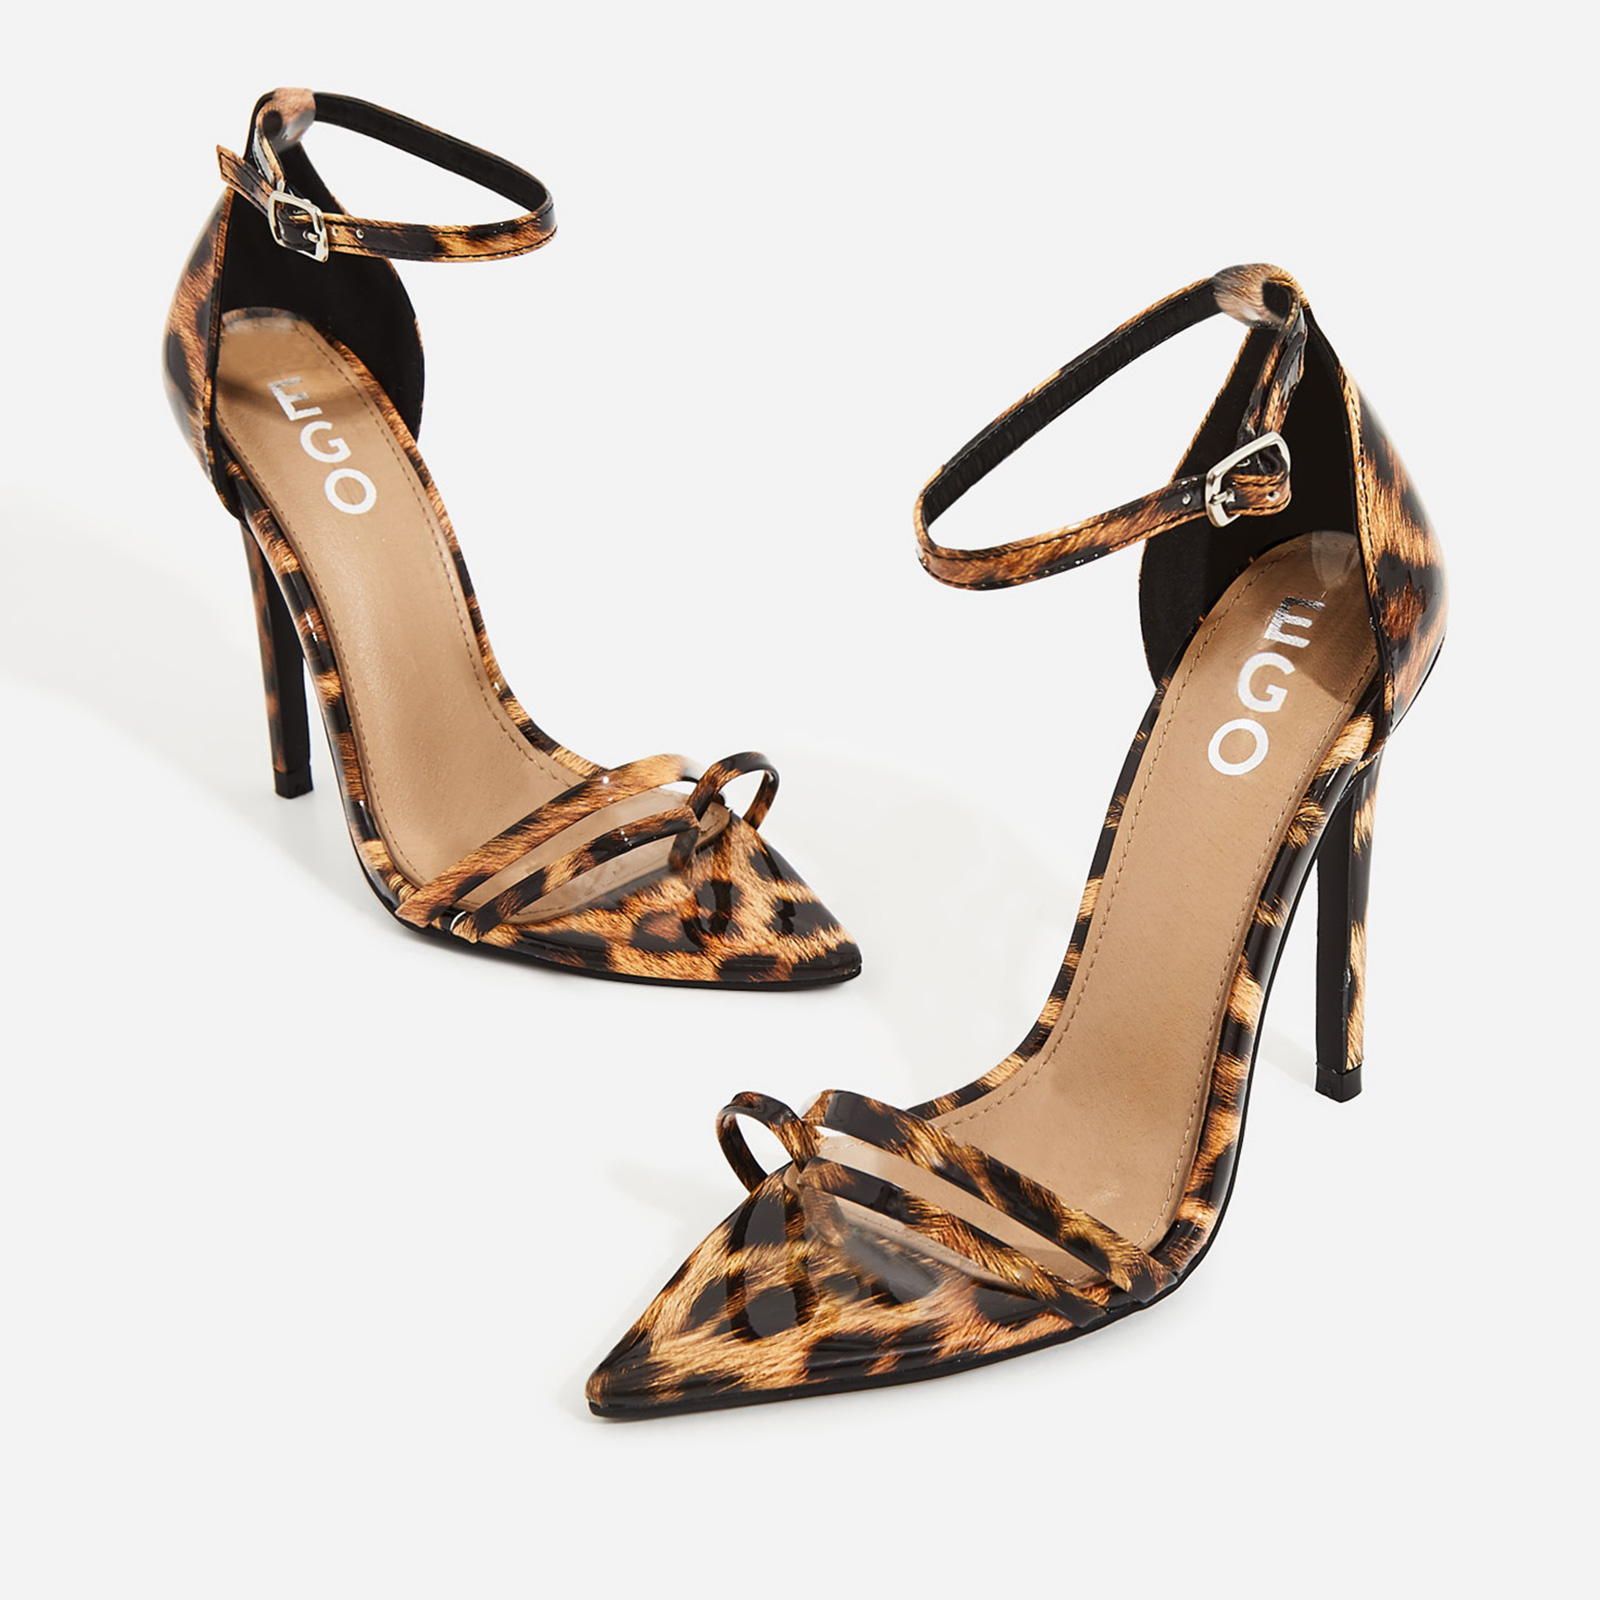 Fern Barley There Strappy Toe Post Heel In Tan Leopard Patent